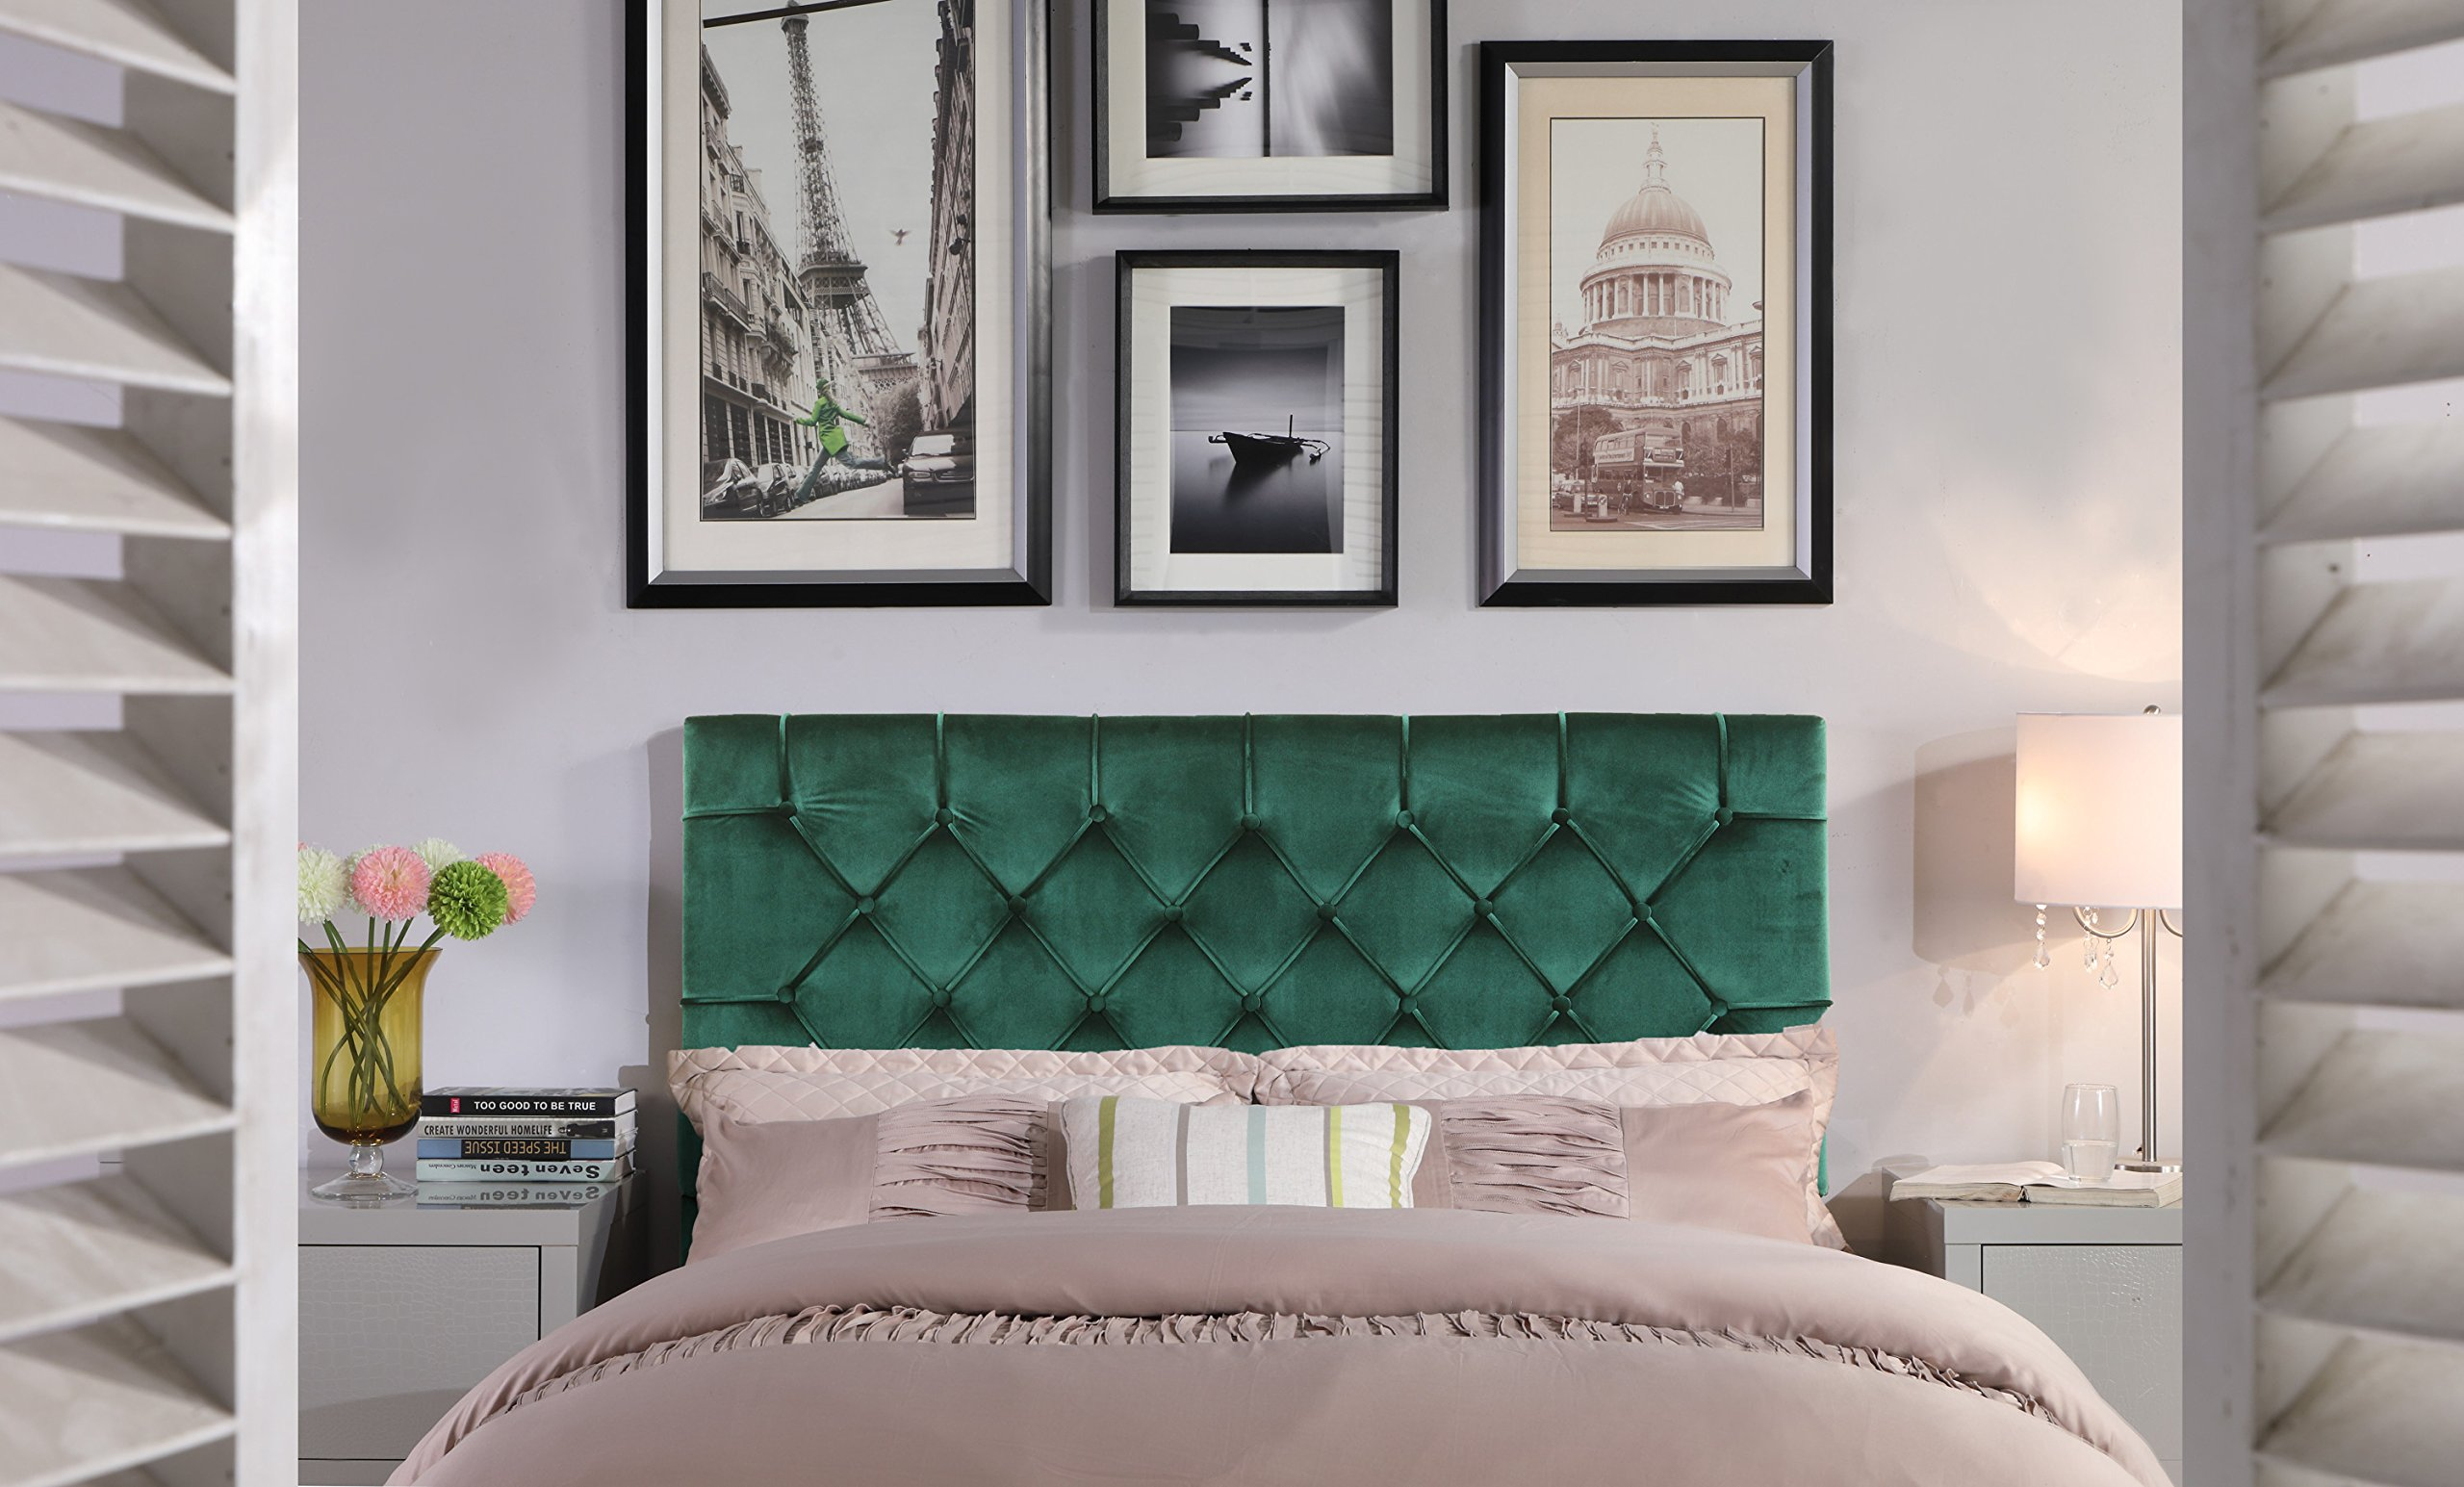 Iconic Home FHB9039-AN Rivka Headboard Velvet Upholstered Diamond Button Tufted Modern Transitional, Twin, Green by Iconic Home